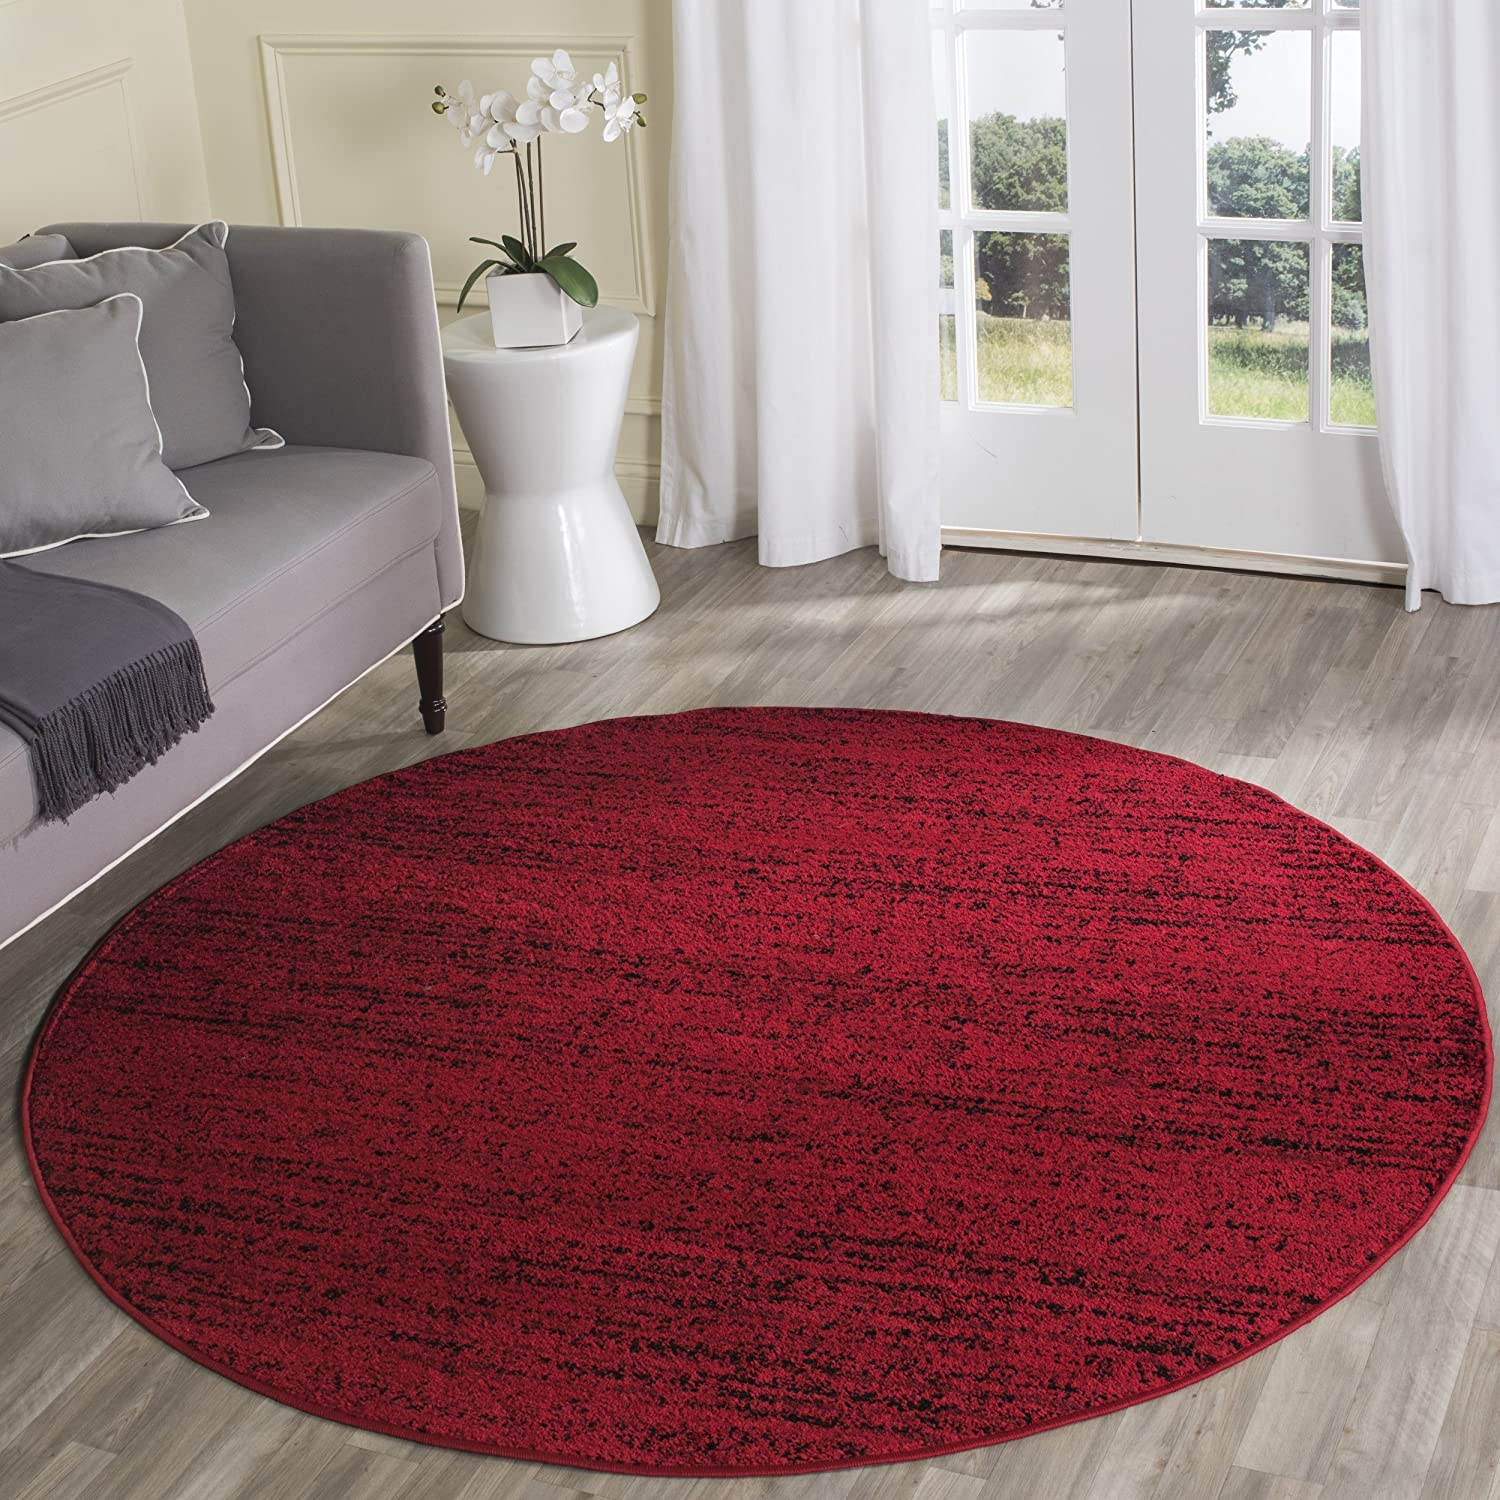 Safavieh Adirondack Collection ADR117F Red and Black Contemporary Round Area Rug (4' Diameter)